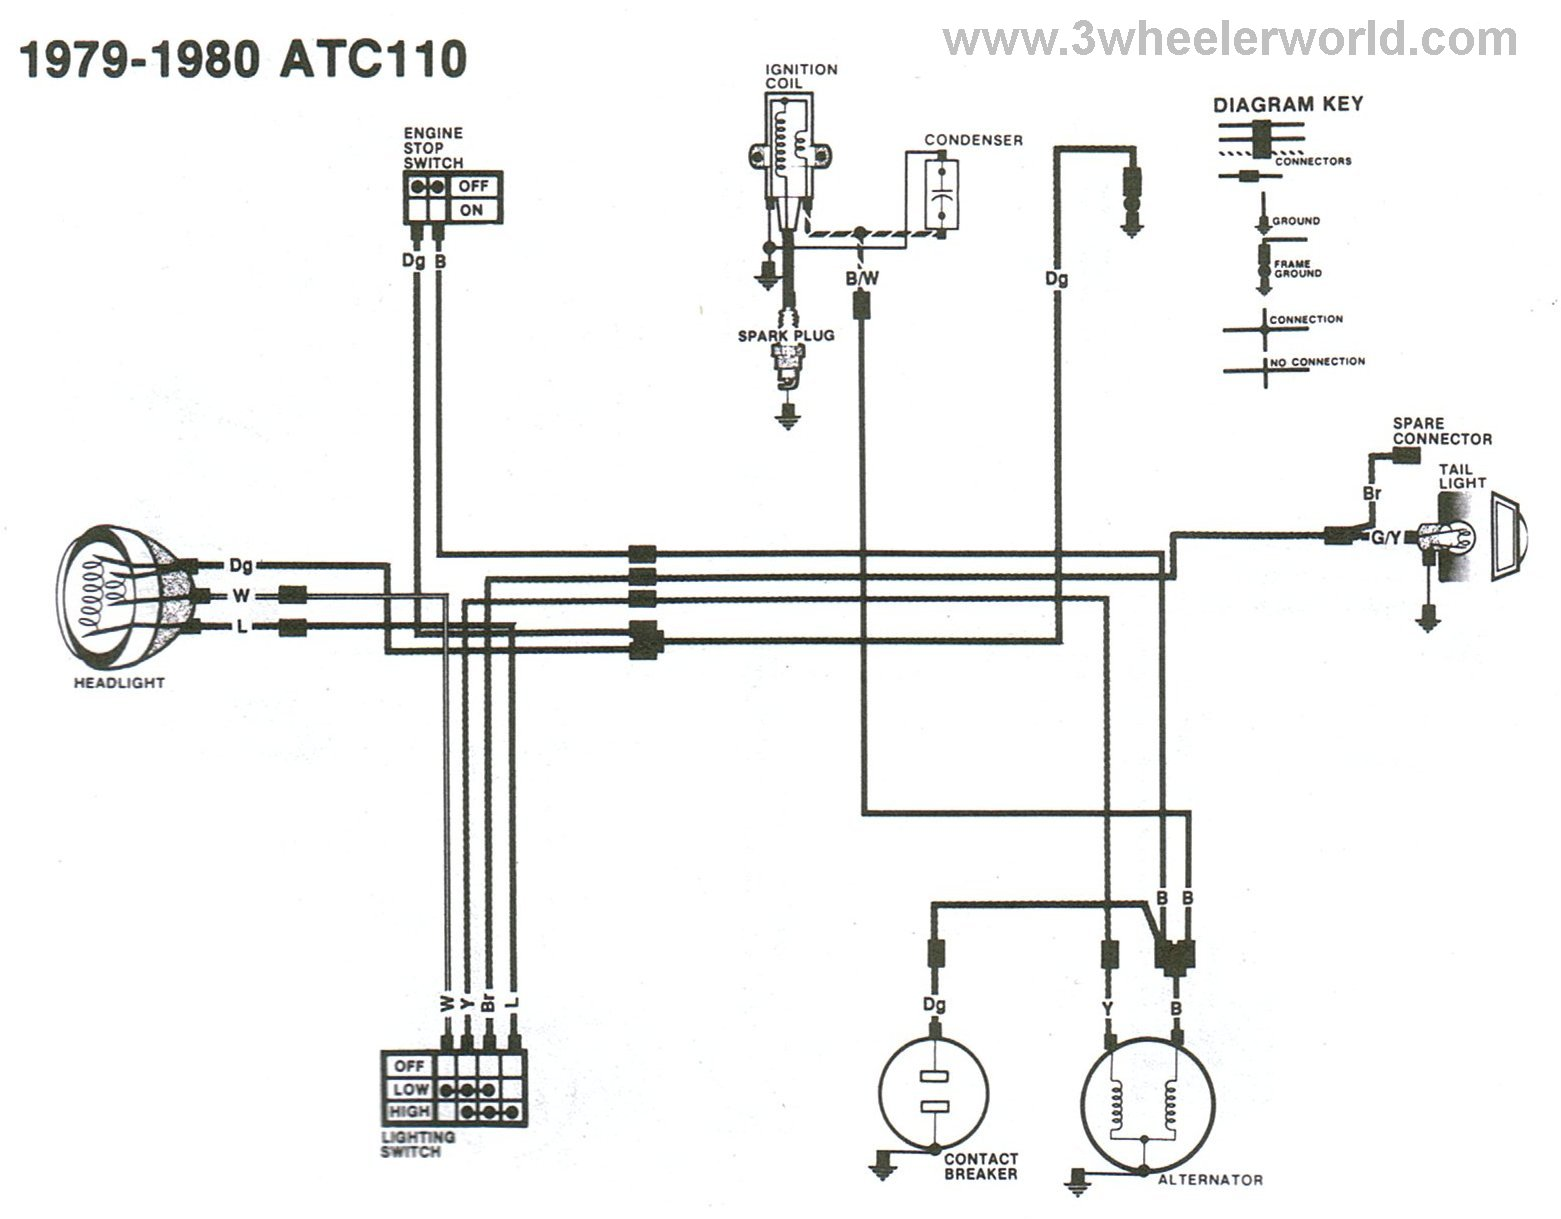 ATC110x79Thru80 3 wheeler world tech help honda wiring diagrams 400ex headlight wiring diagram at gsmx.co